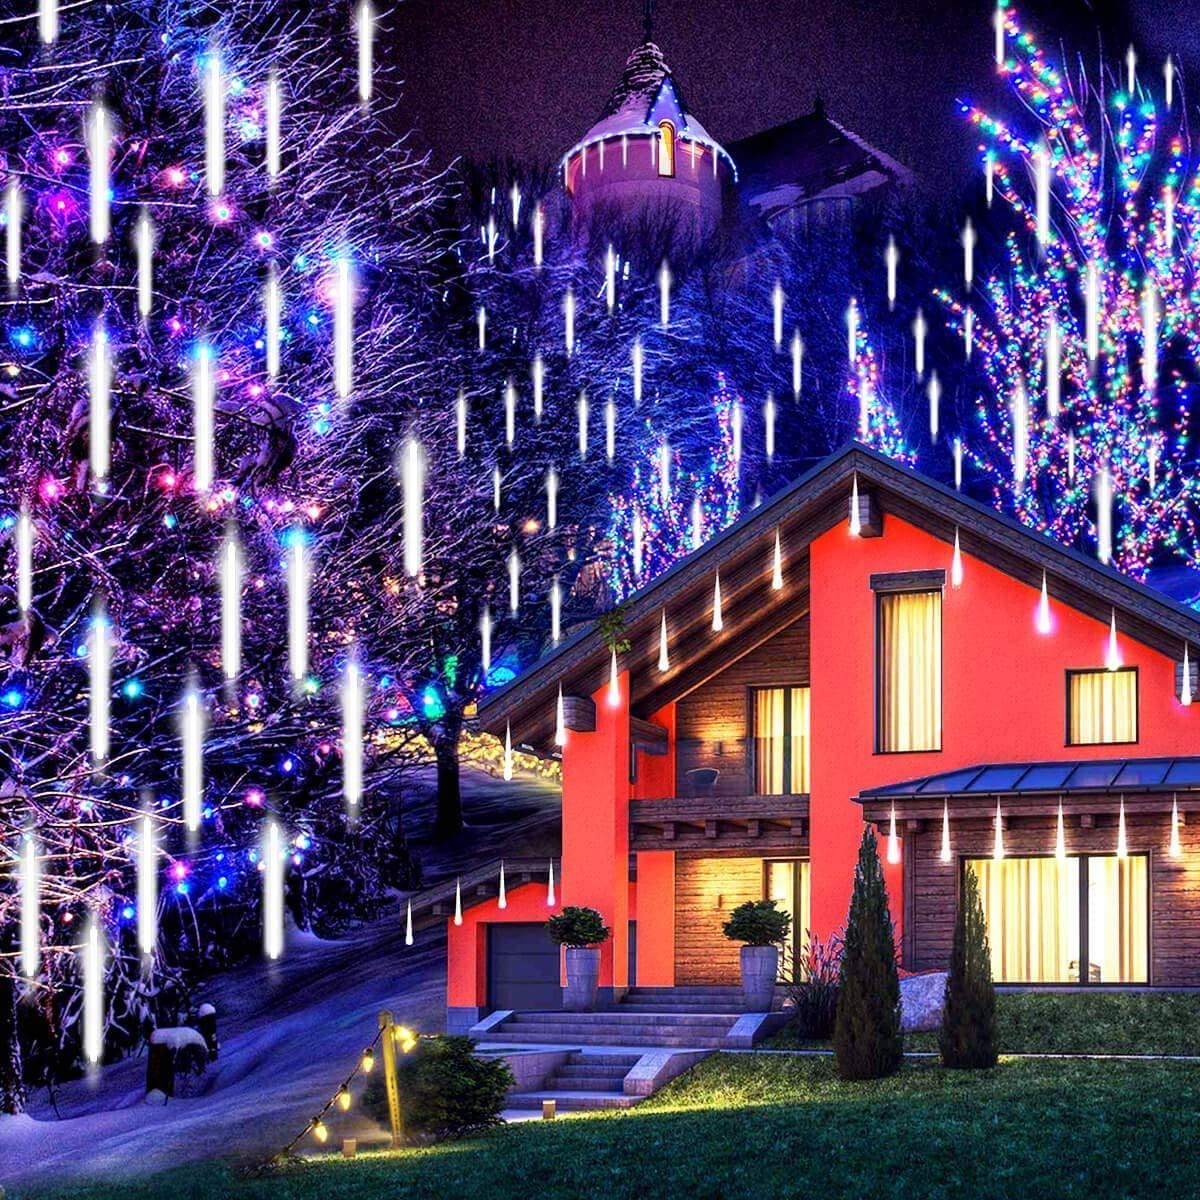 JLtech Christmas Meteor Shower Lights, Icicle Snow String Lights with 11.8 inch 8 Tubes 224 LEDs WAS £13.99 NOW £8.39 w/code 9VE34NRL @ Amazon